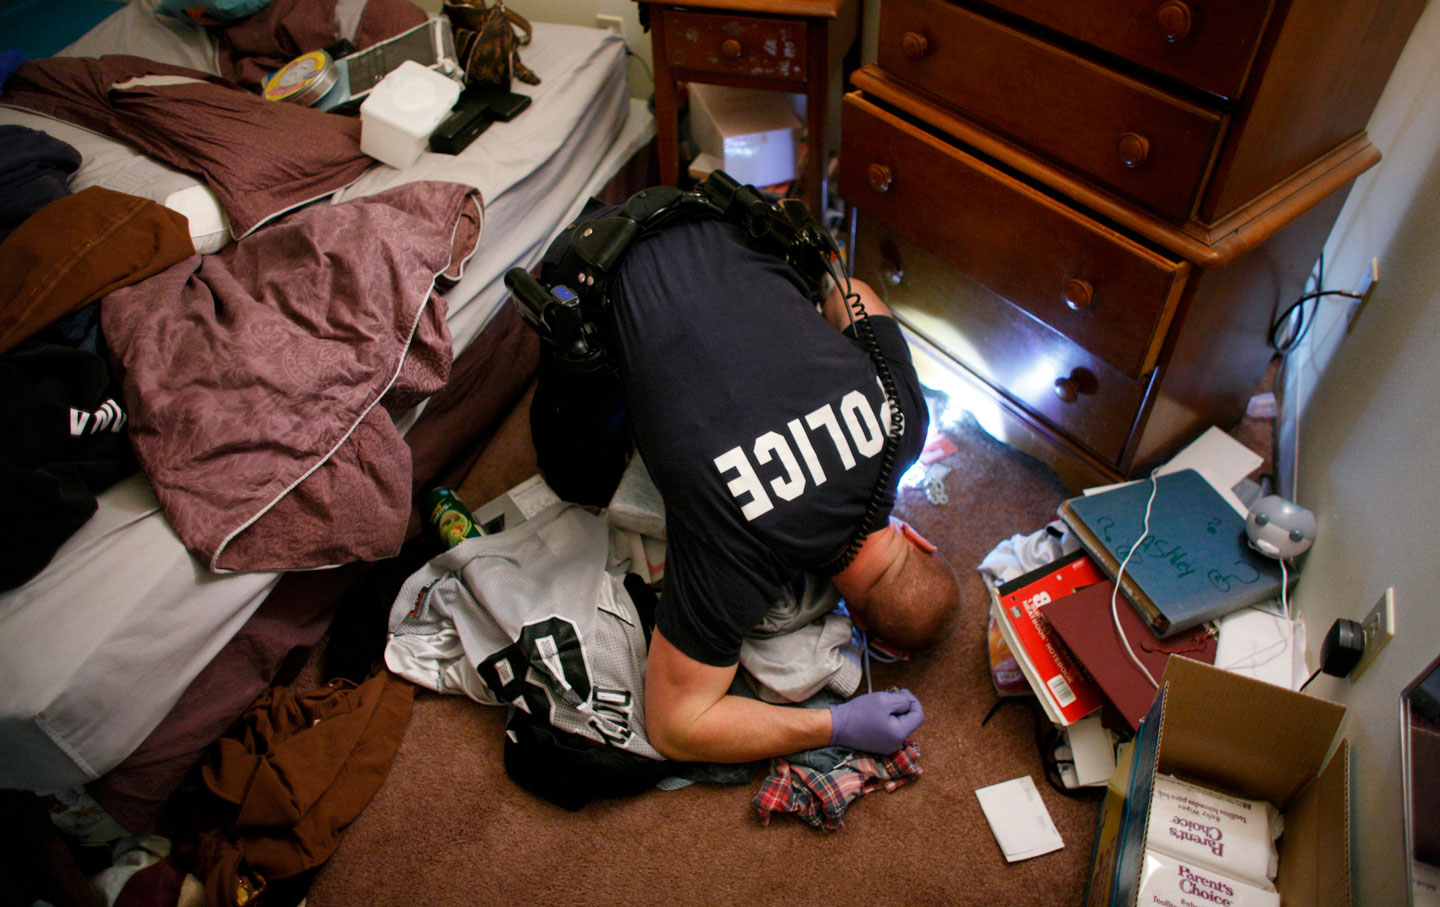 Search and seizure: A drug bust in Kalamazoo, Michigan, November 12, 2009. (Credit: John Gress / Reuters)